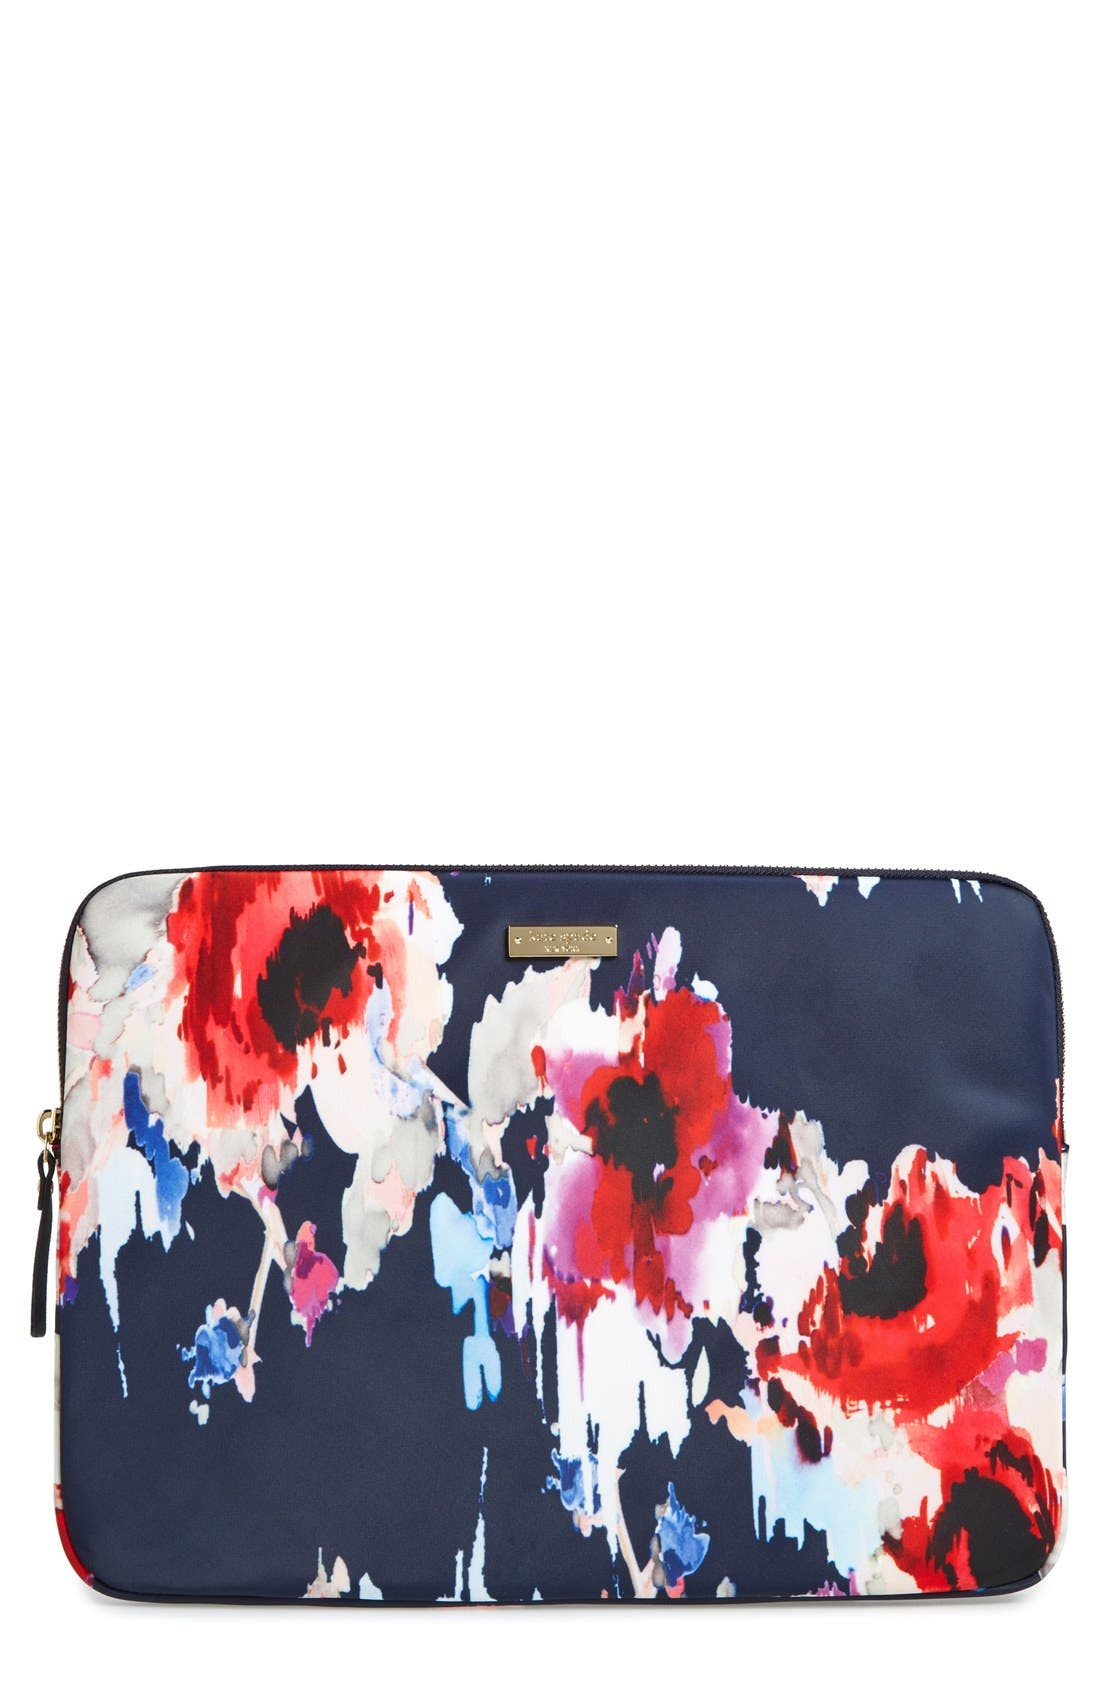 Alternate Image 1 Selected - kate spade new york 'hazy floral' laptop sleeve (13 inch)